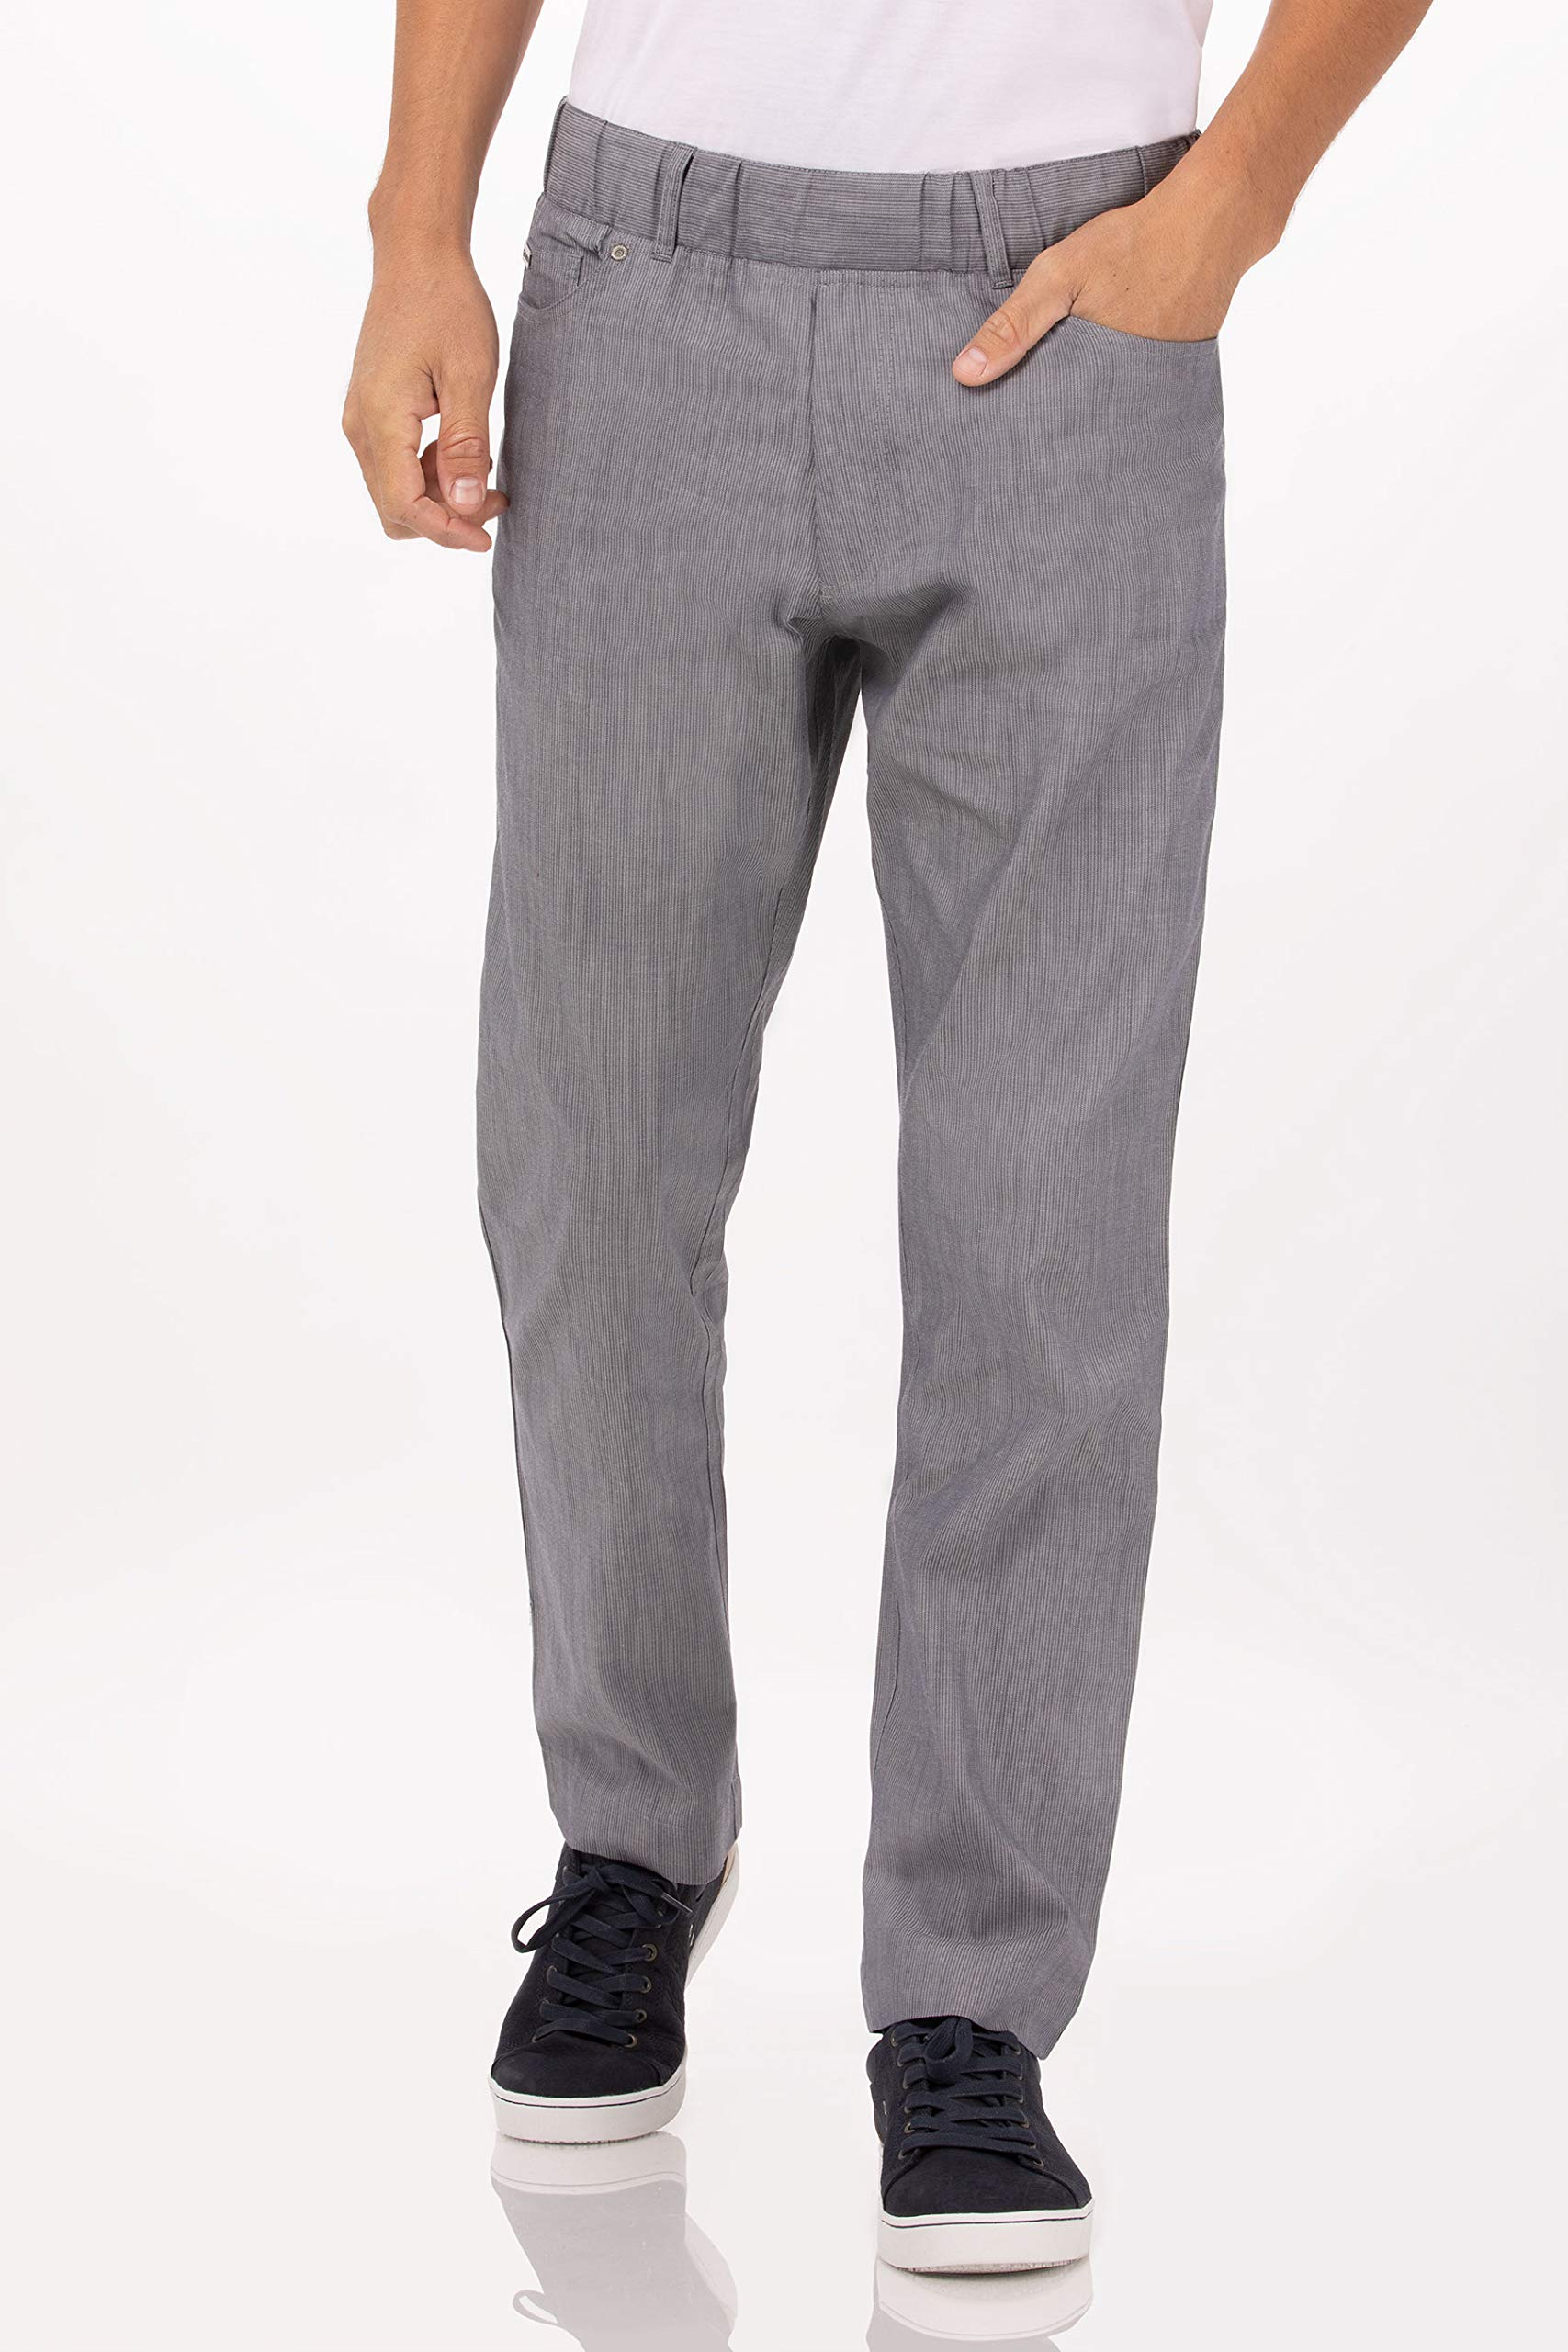 Chef Works Men's Vertical Stripe Chef Pants, Steel Blue, XX-Large by Chef Works